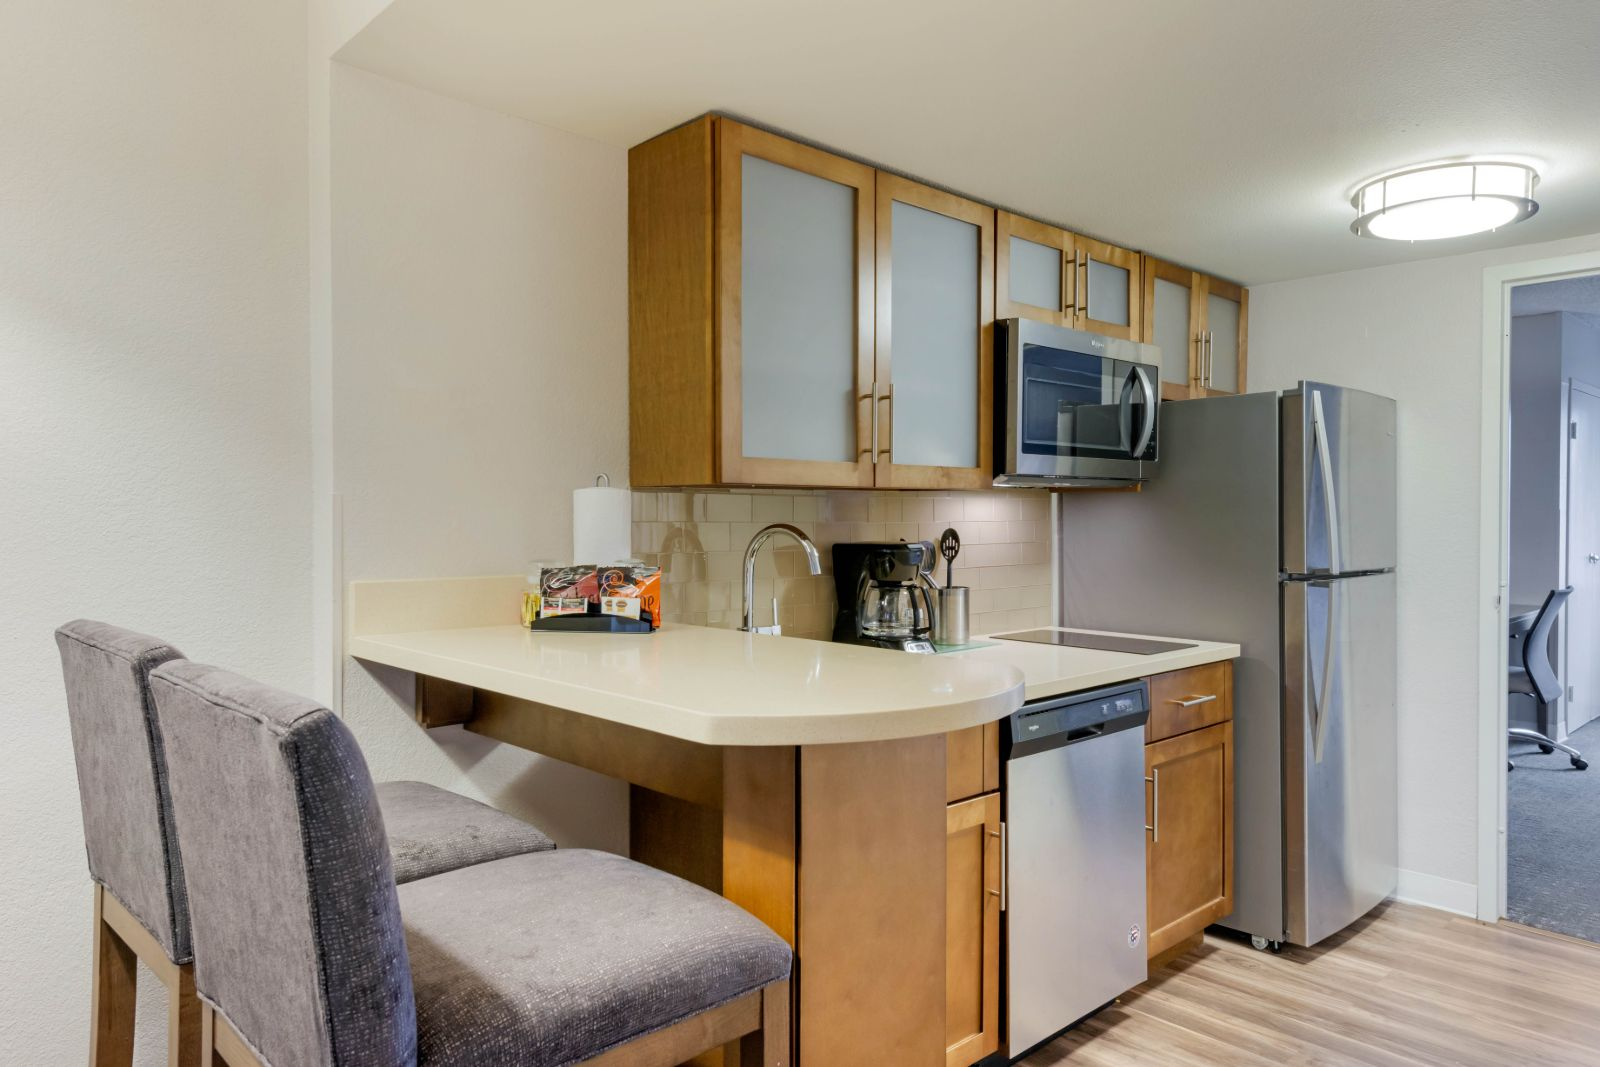 Newly renovated kitchen in one of our Orlando Hotel Suites